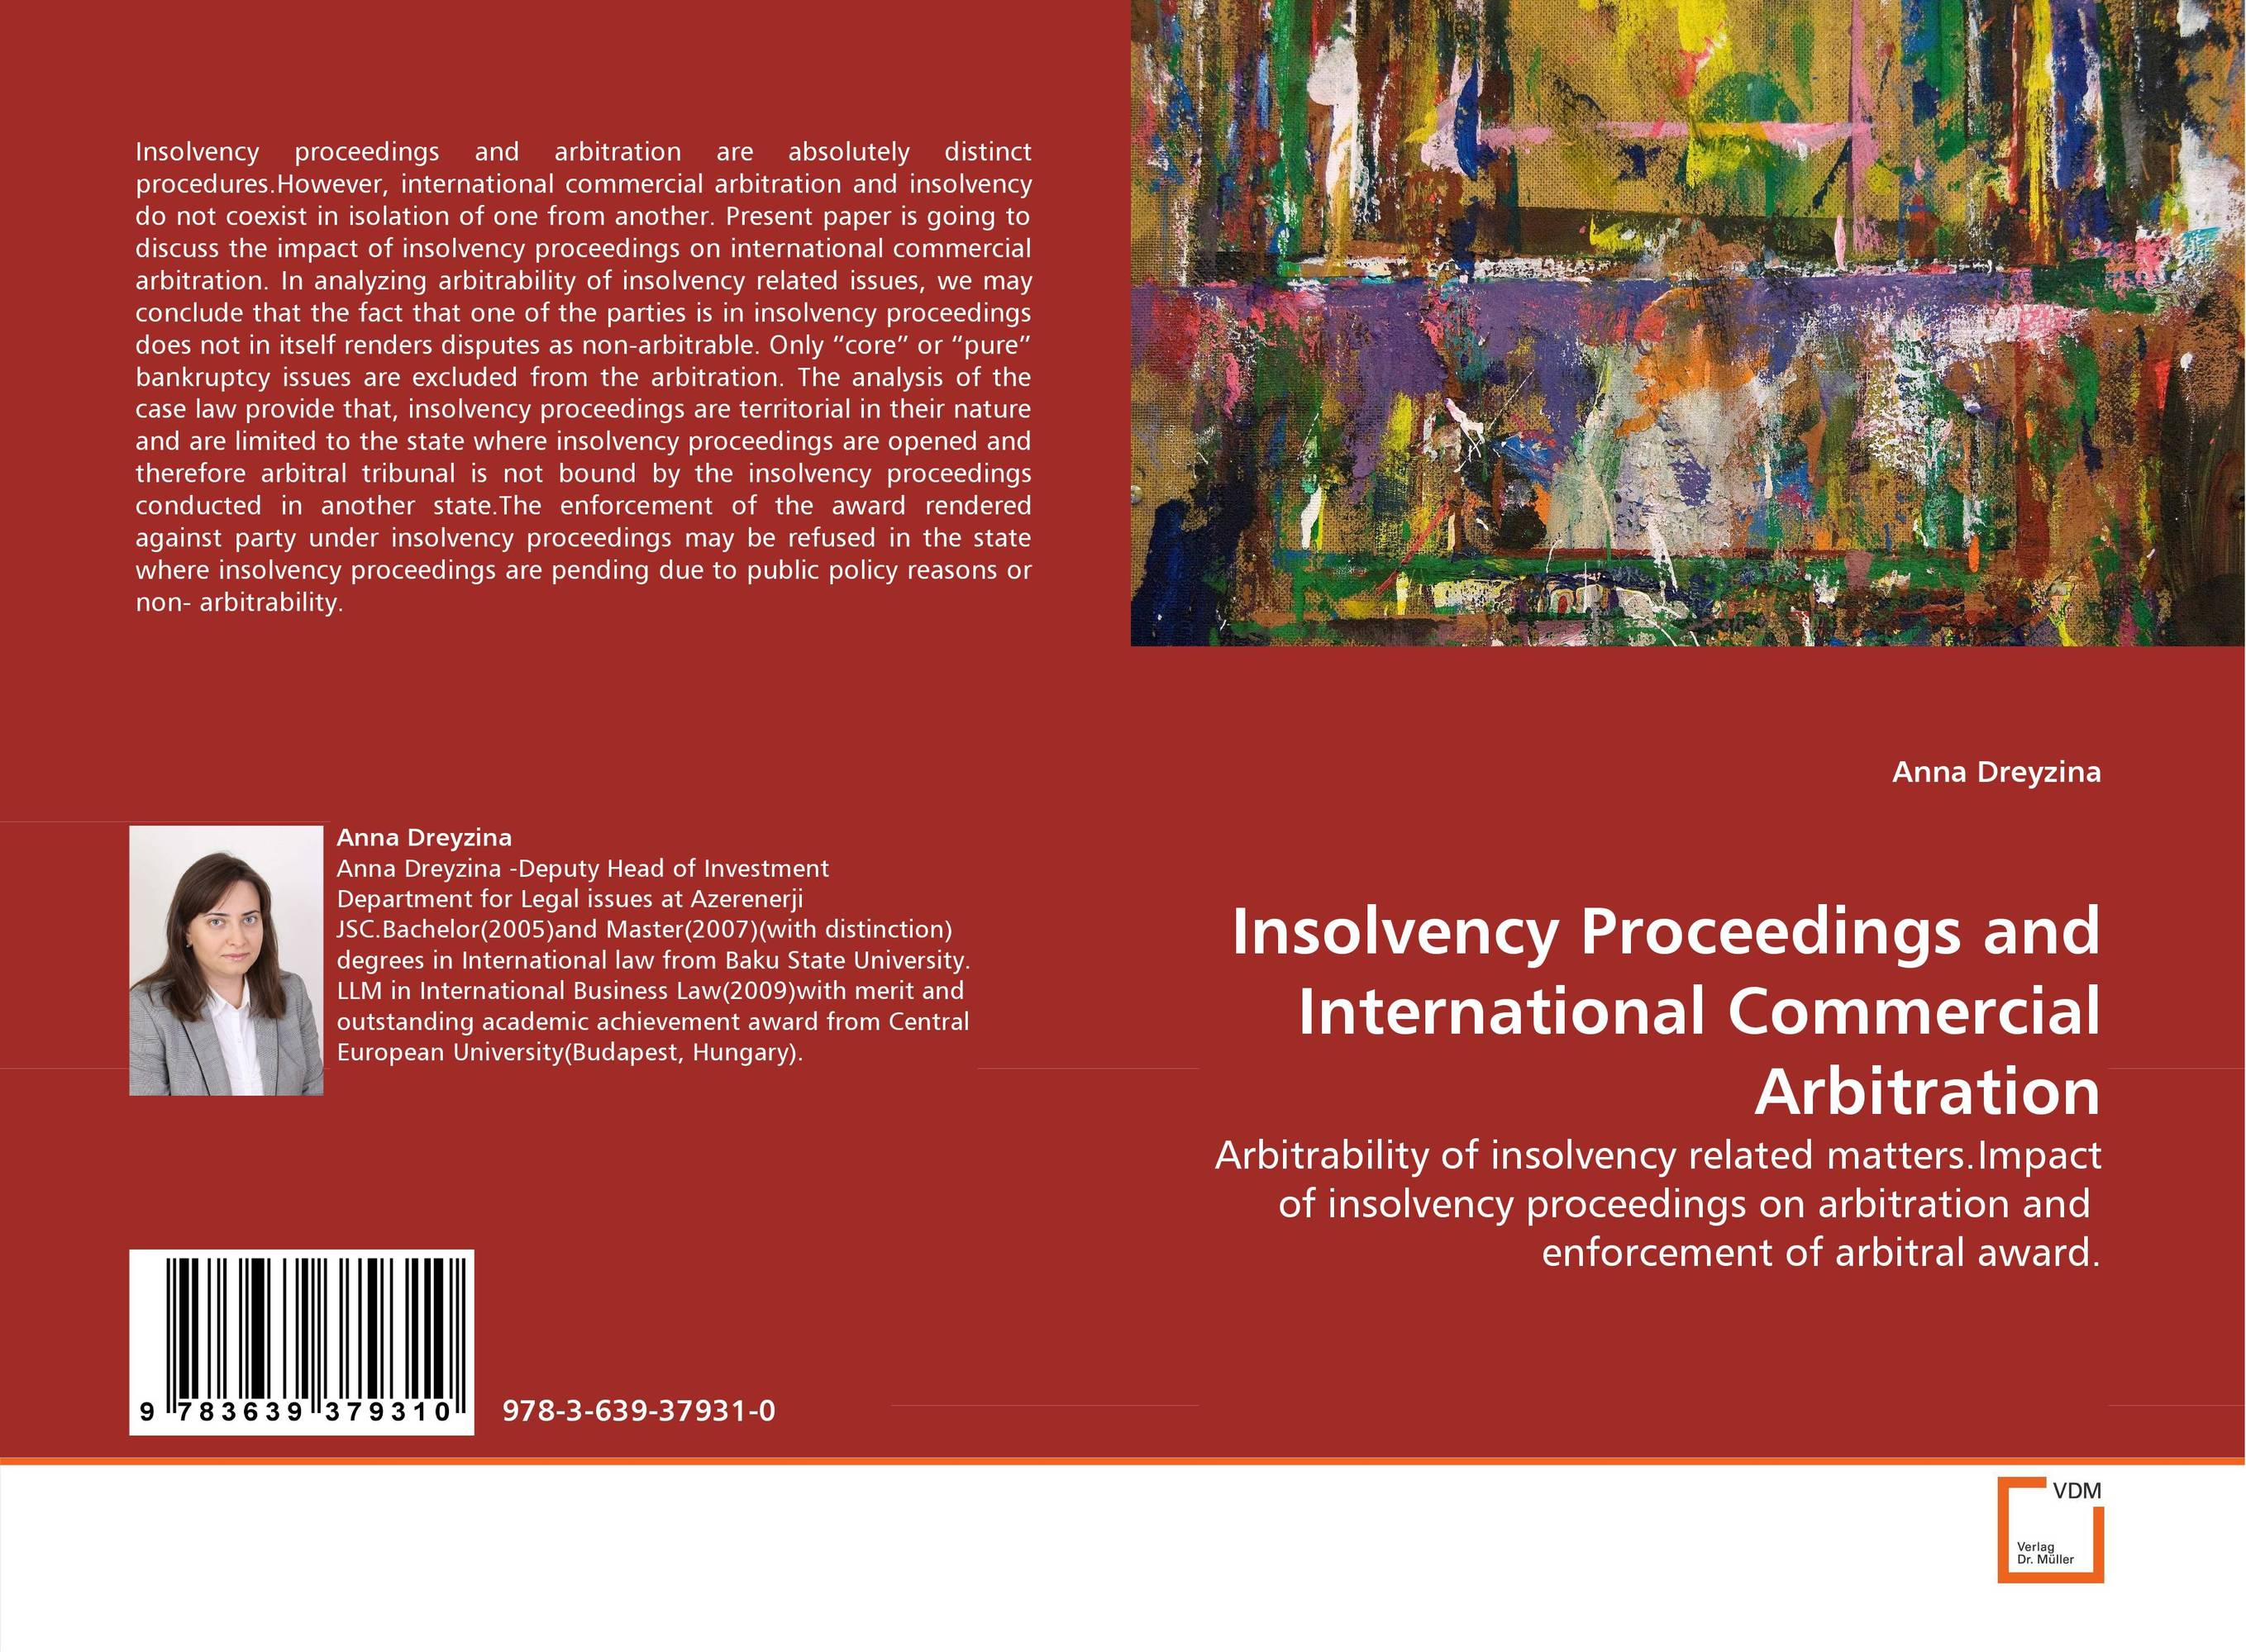 Insolvency Proceedings and International Commercial Arbitration